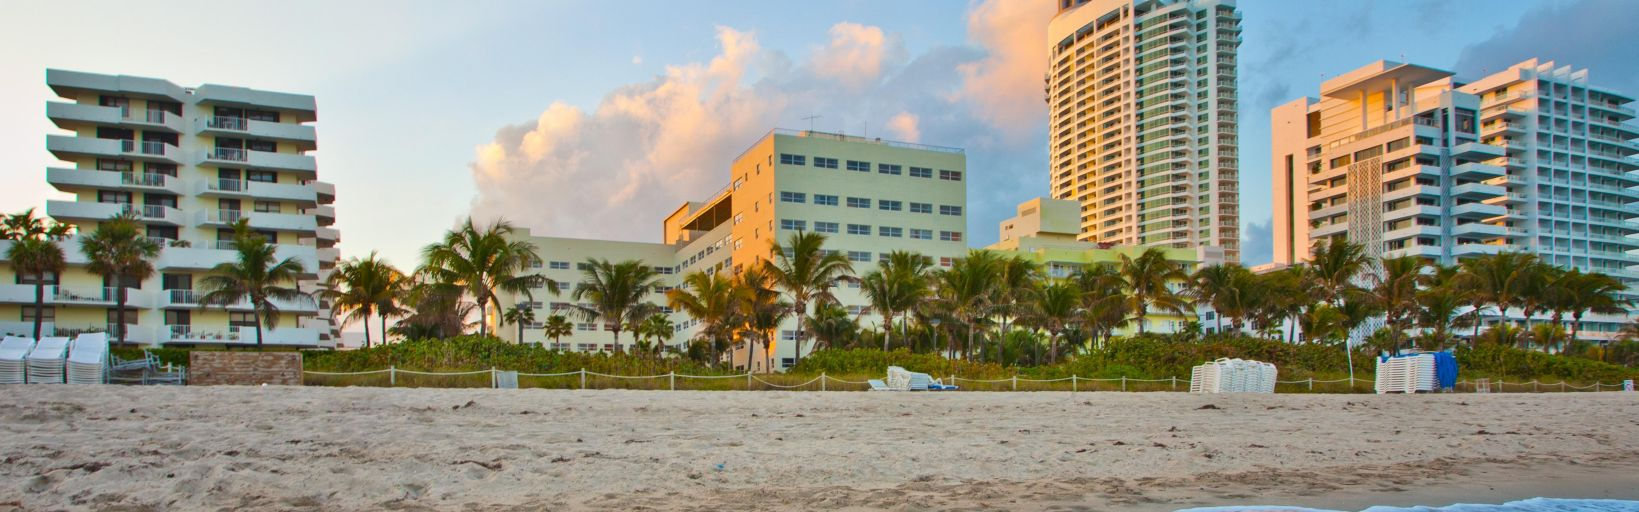 Miami Beach Oceanfront Day Exterior And Oceanview Hotel